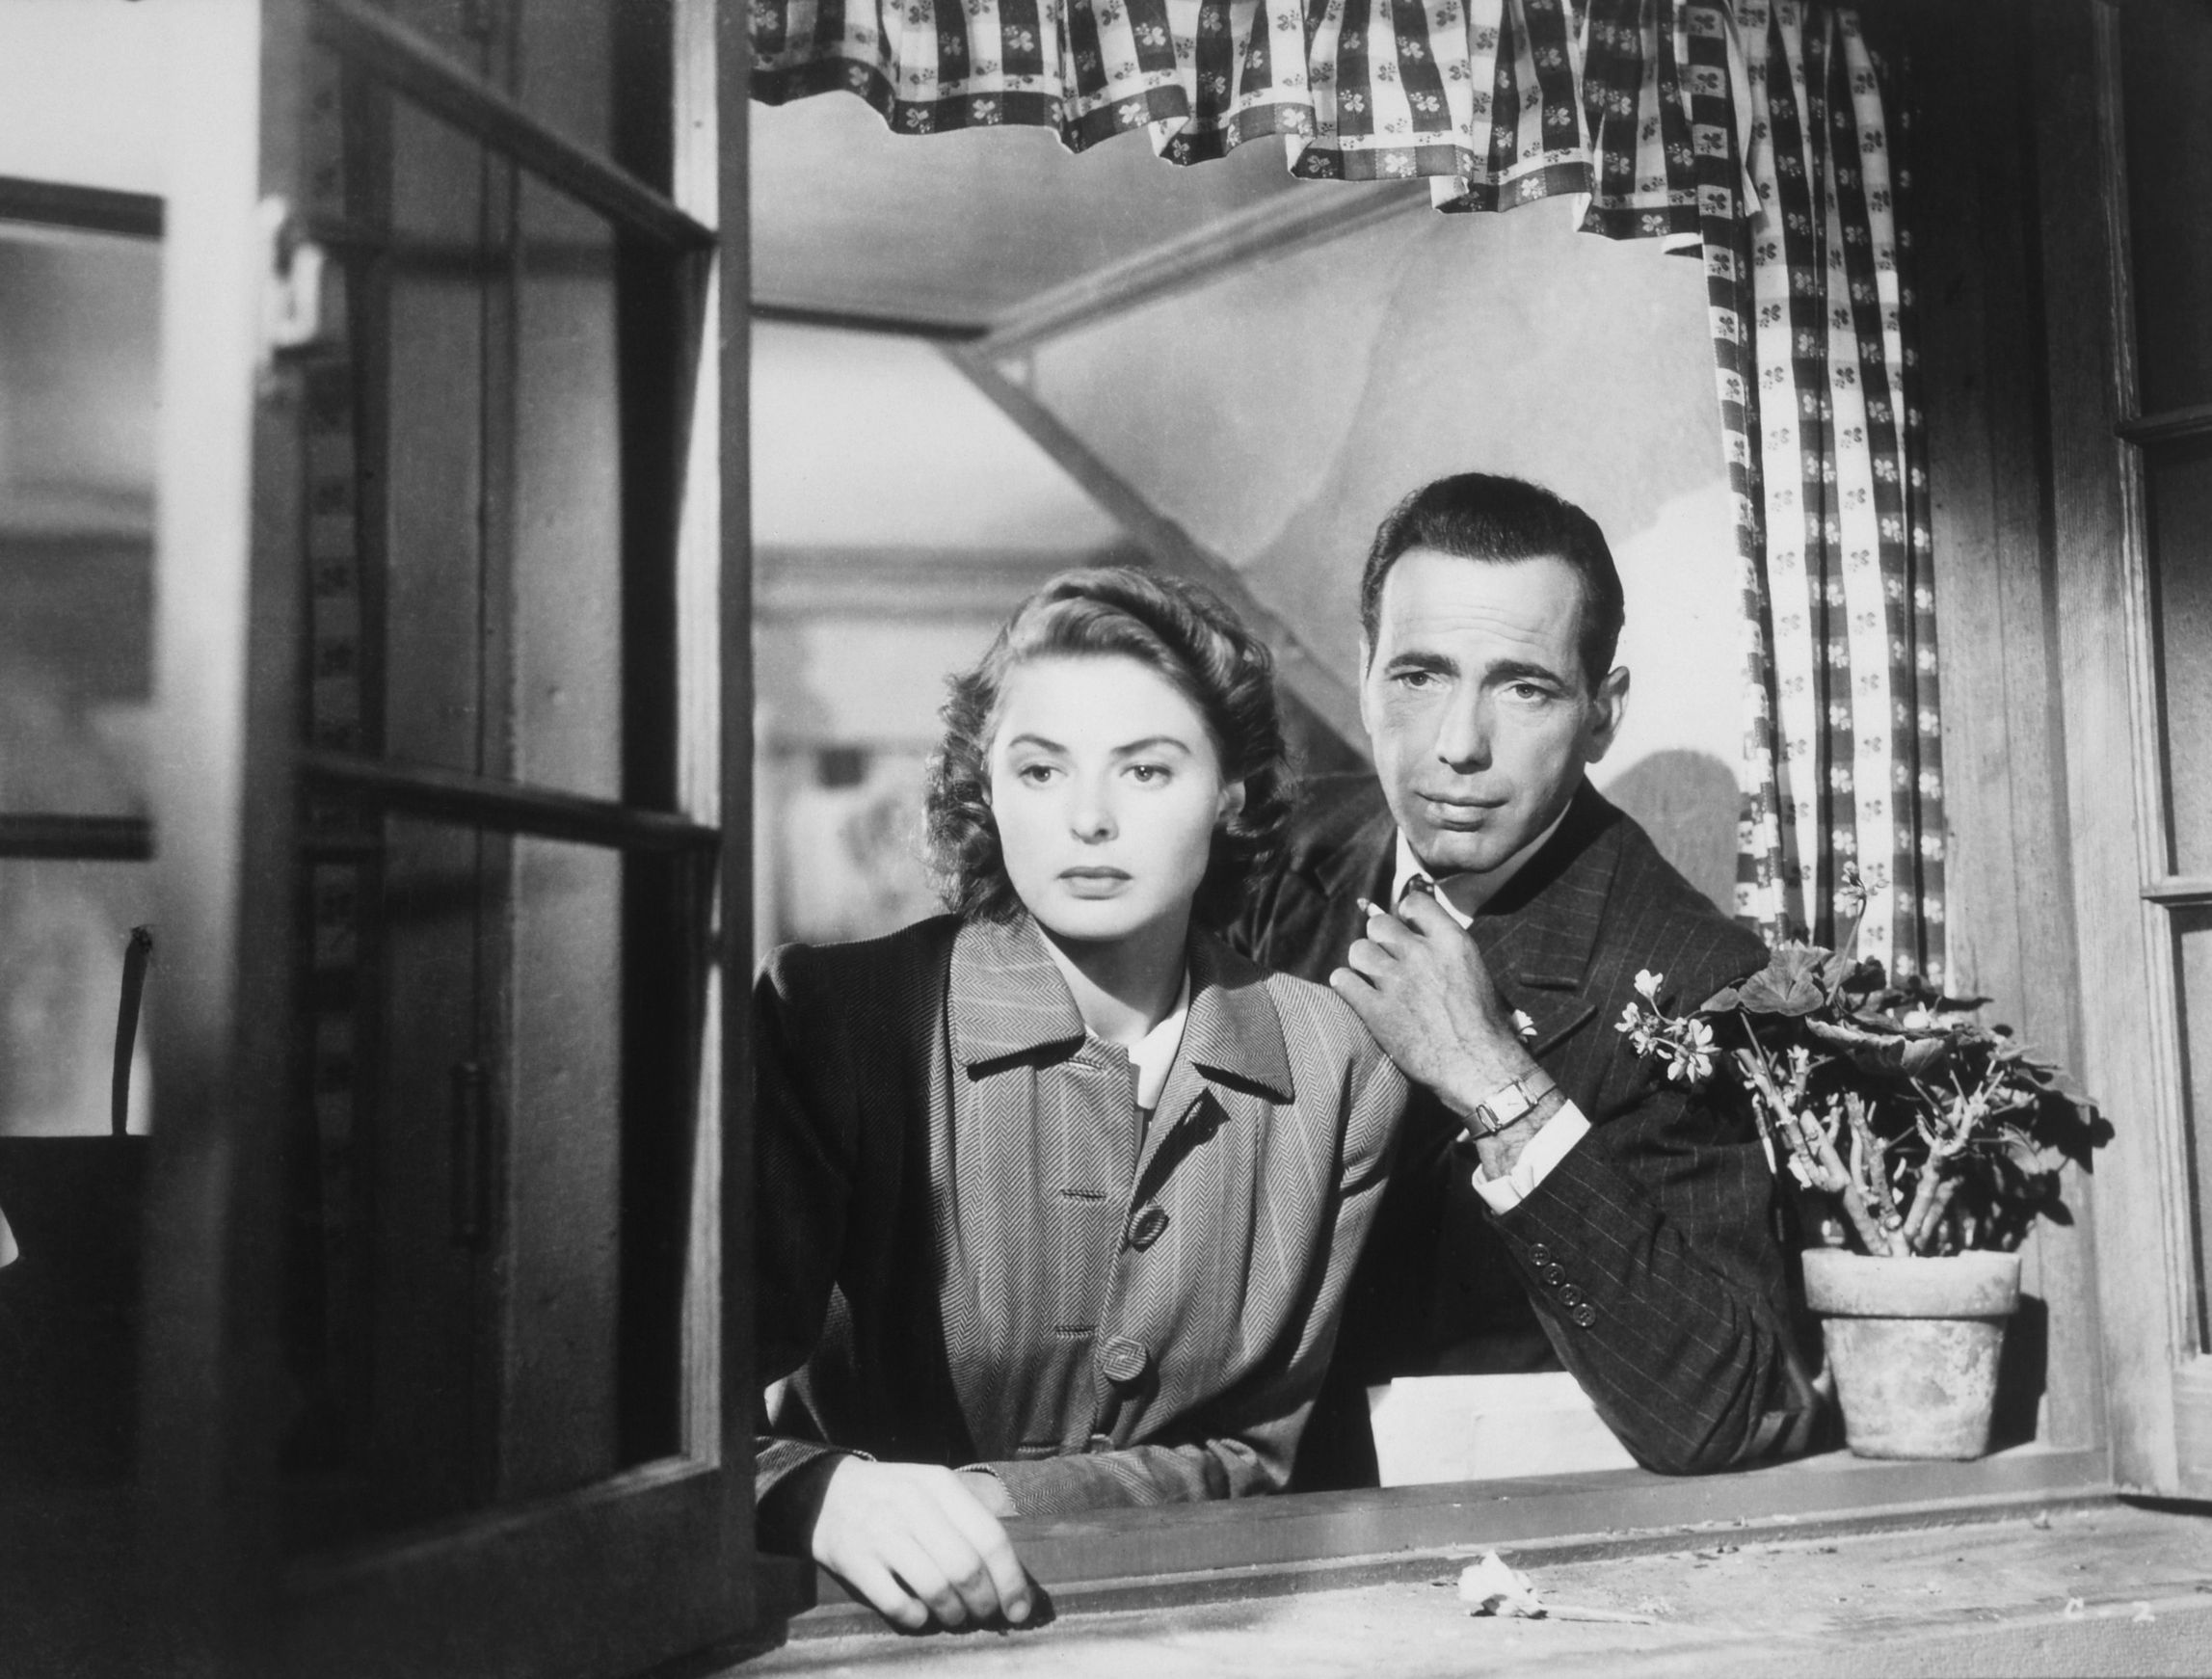 Jan. 1, 1940 - Humphrey Bogart and Ingrid Bergman Looking Out Window, On-Set of the Film, Casablanca, 1942,Image: 190612918, License: Rights-managed, Restrictions: PLEASE NOTE: Entertainment Pictures is not the copyright owner of this or any television or film publicity image, but only provides access to the material. Additional permissions may be required. Image NOT available for commercial use, ONLY editorial use., Model Release: no, Credit line: JT Vintage / Zuma Press / Profimedia